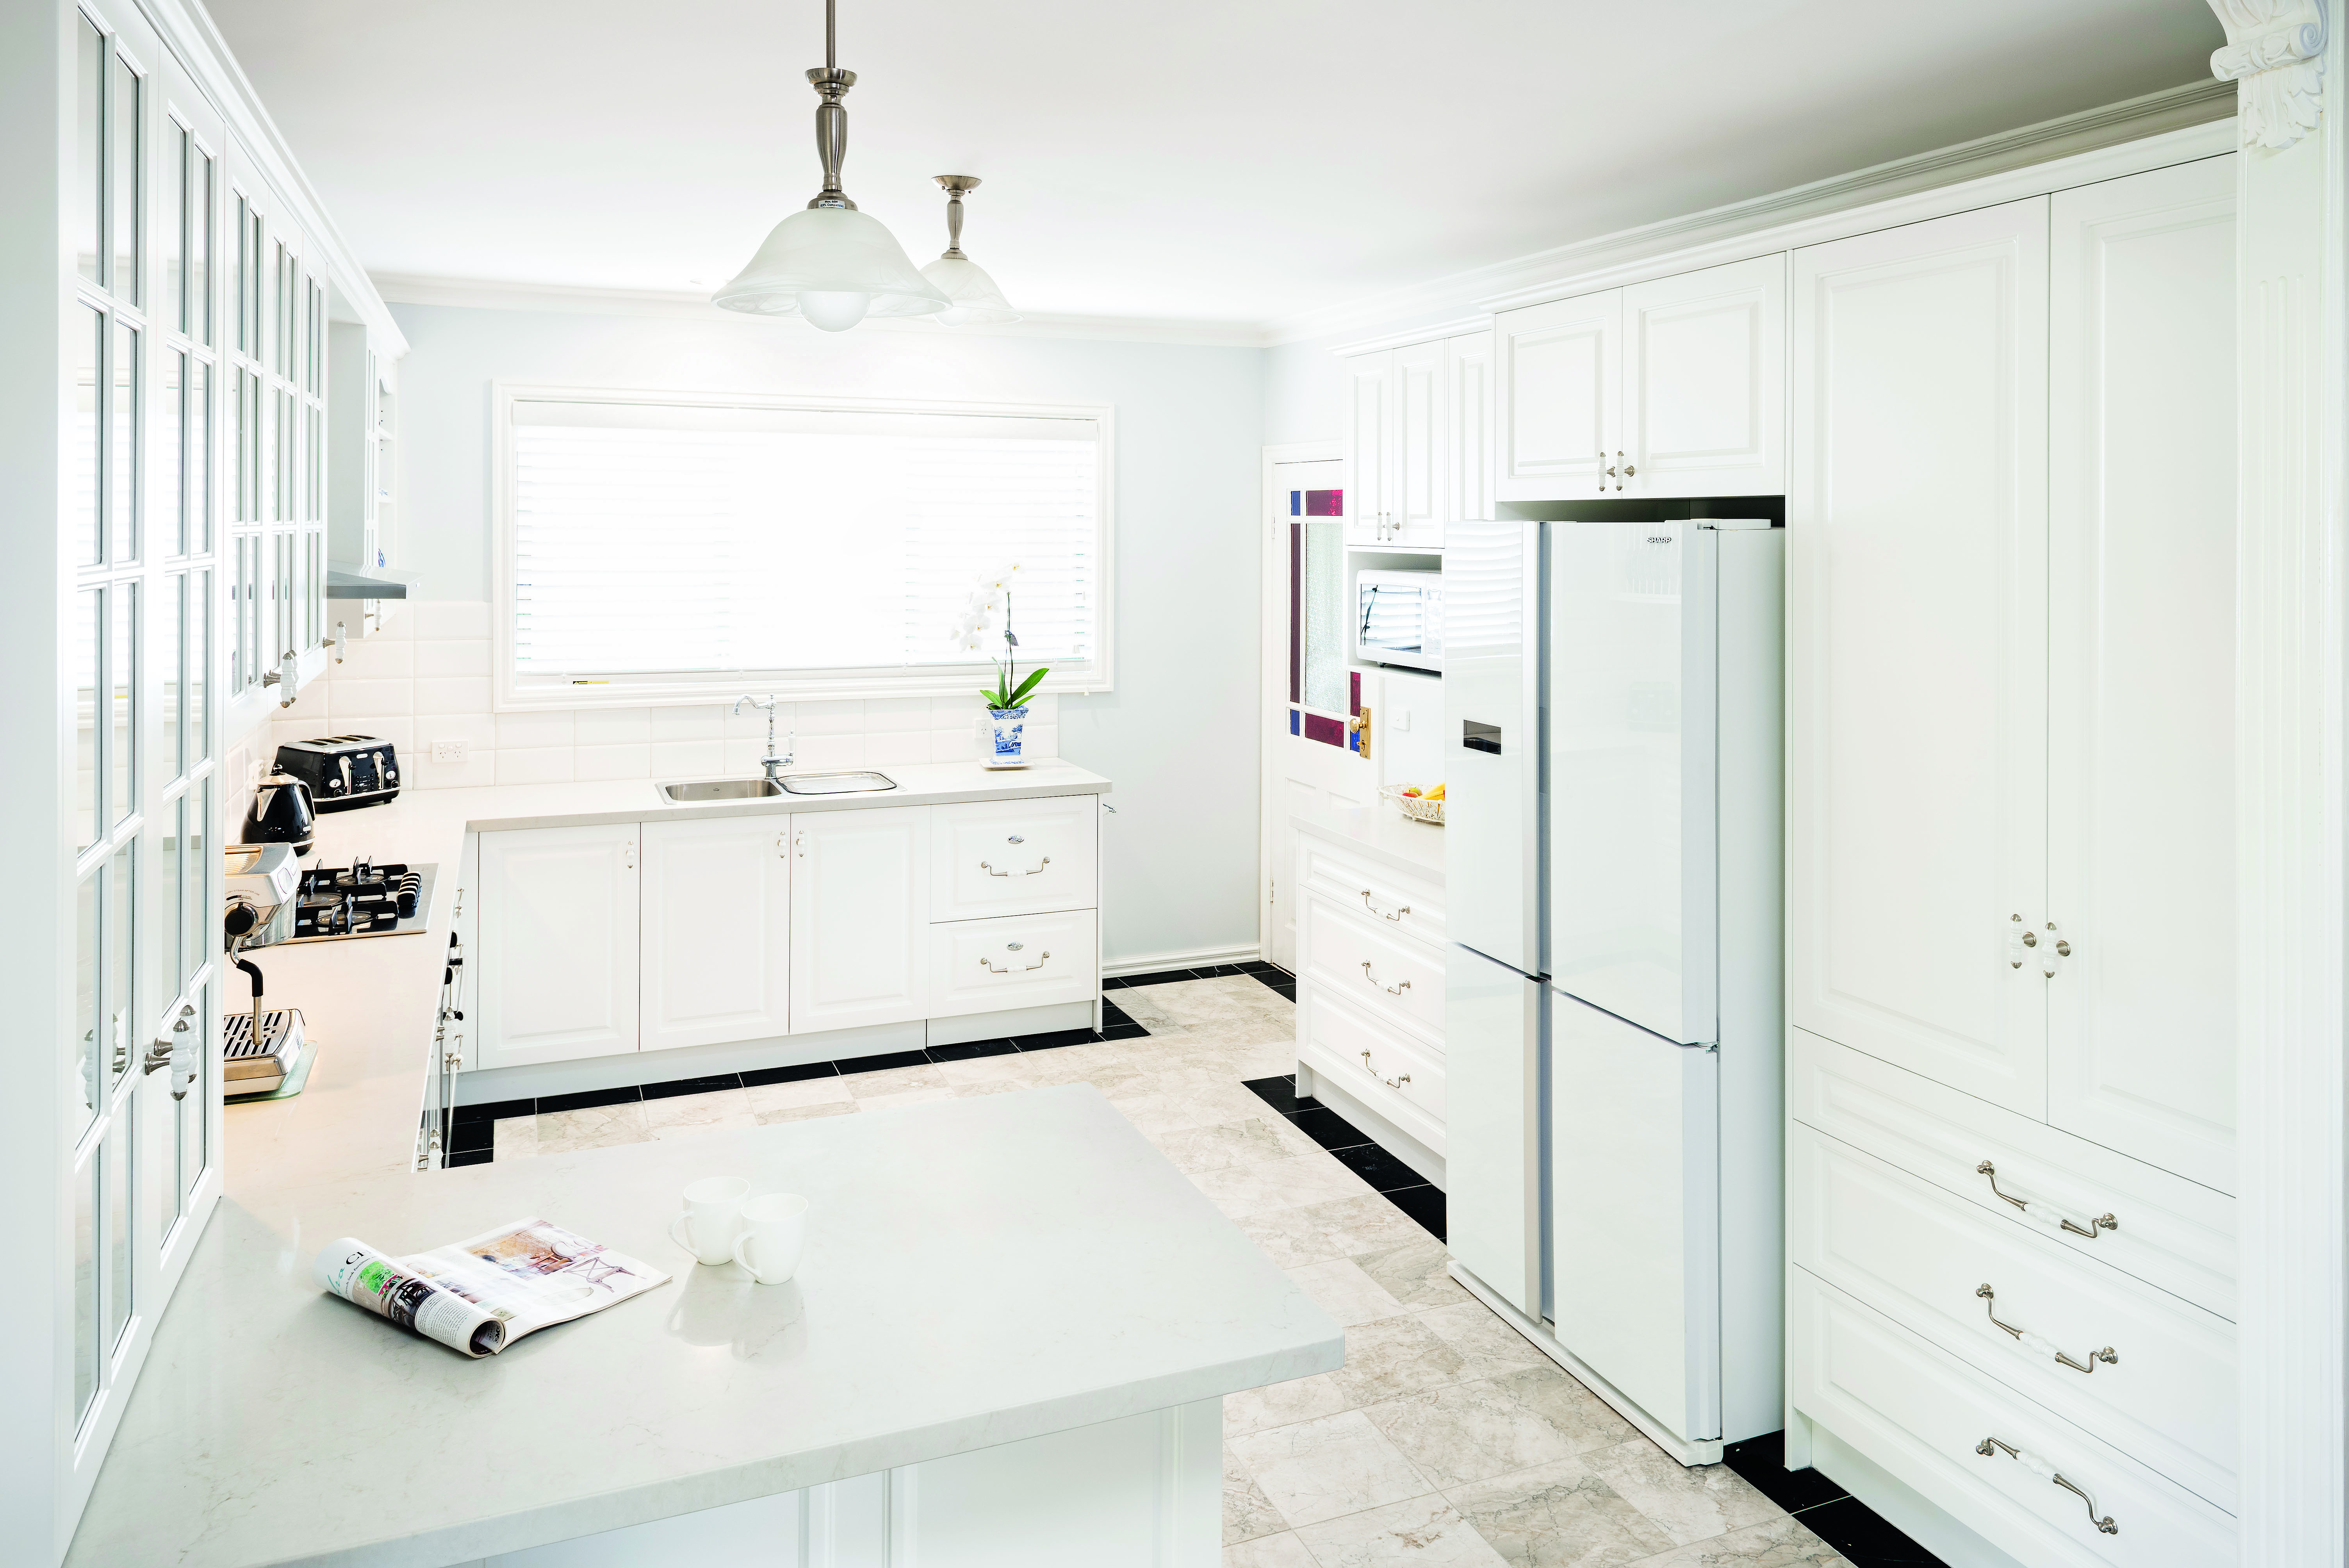 Provincial magic: a country style kitchen - fridge and cabinet view